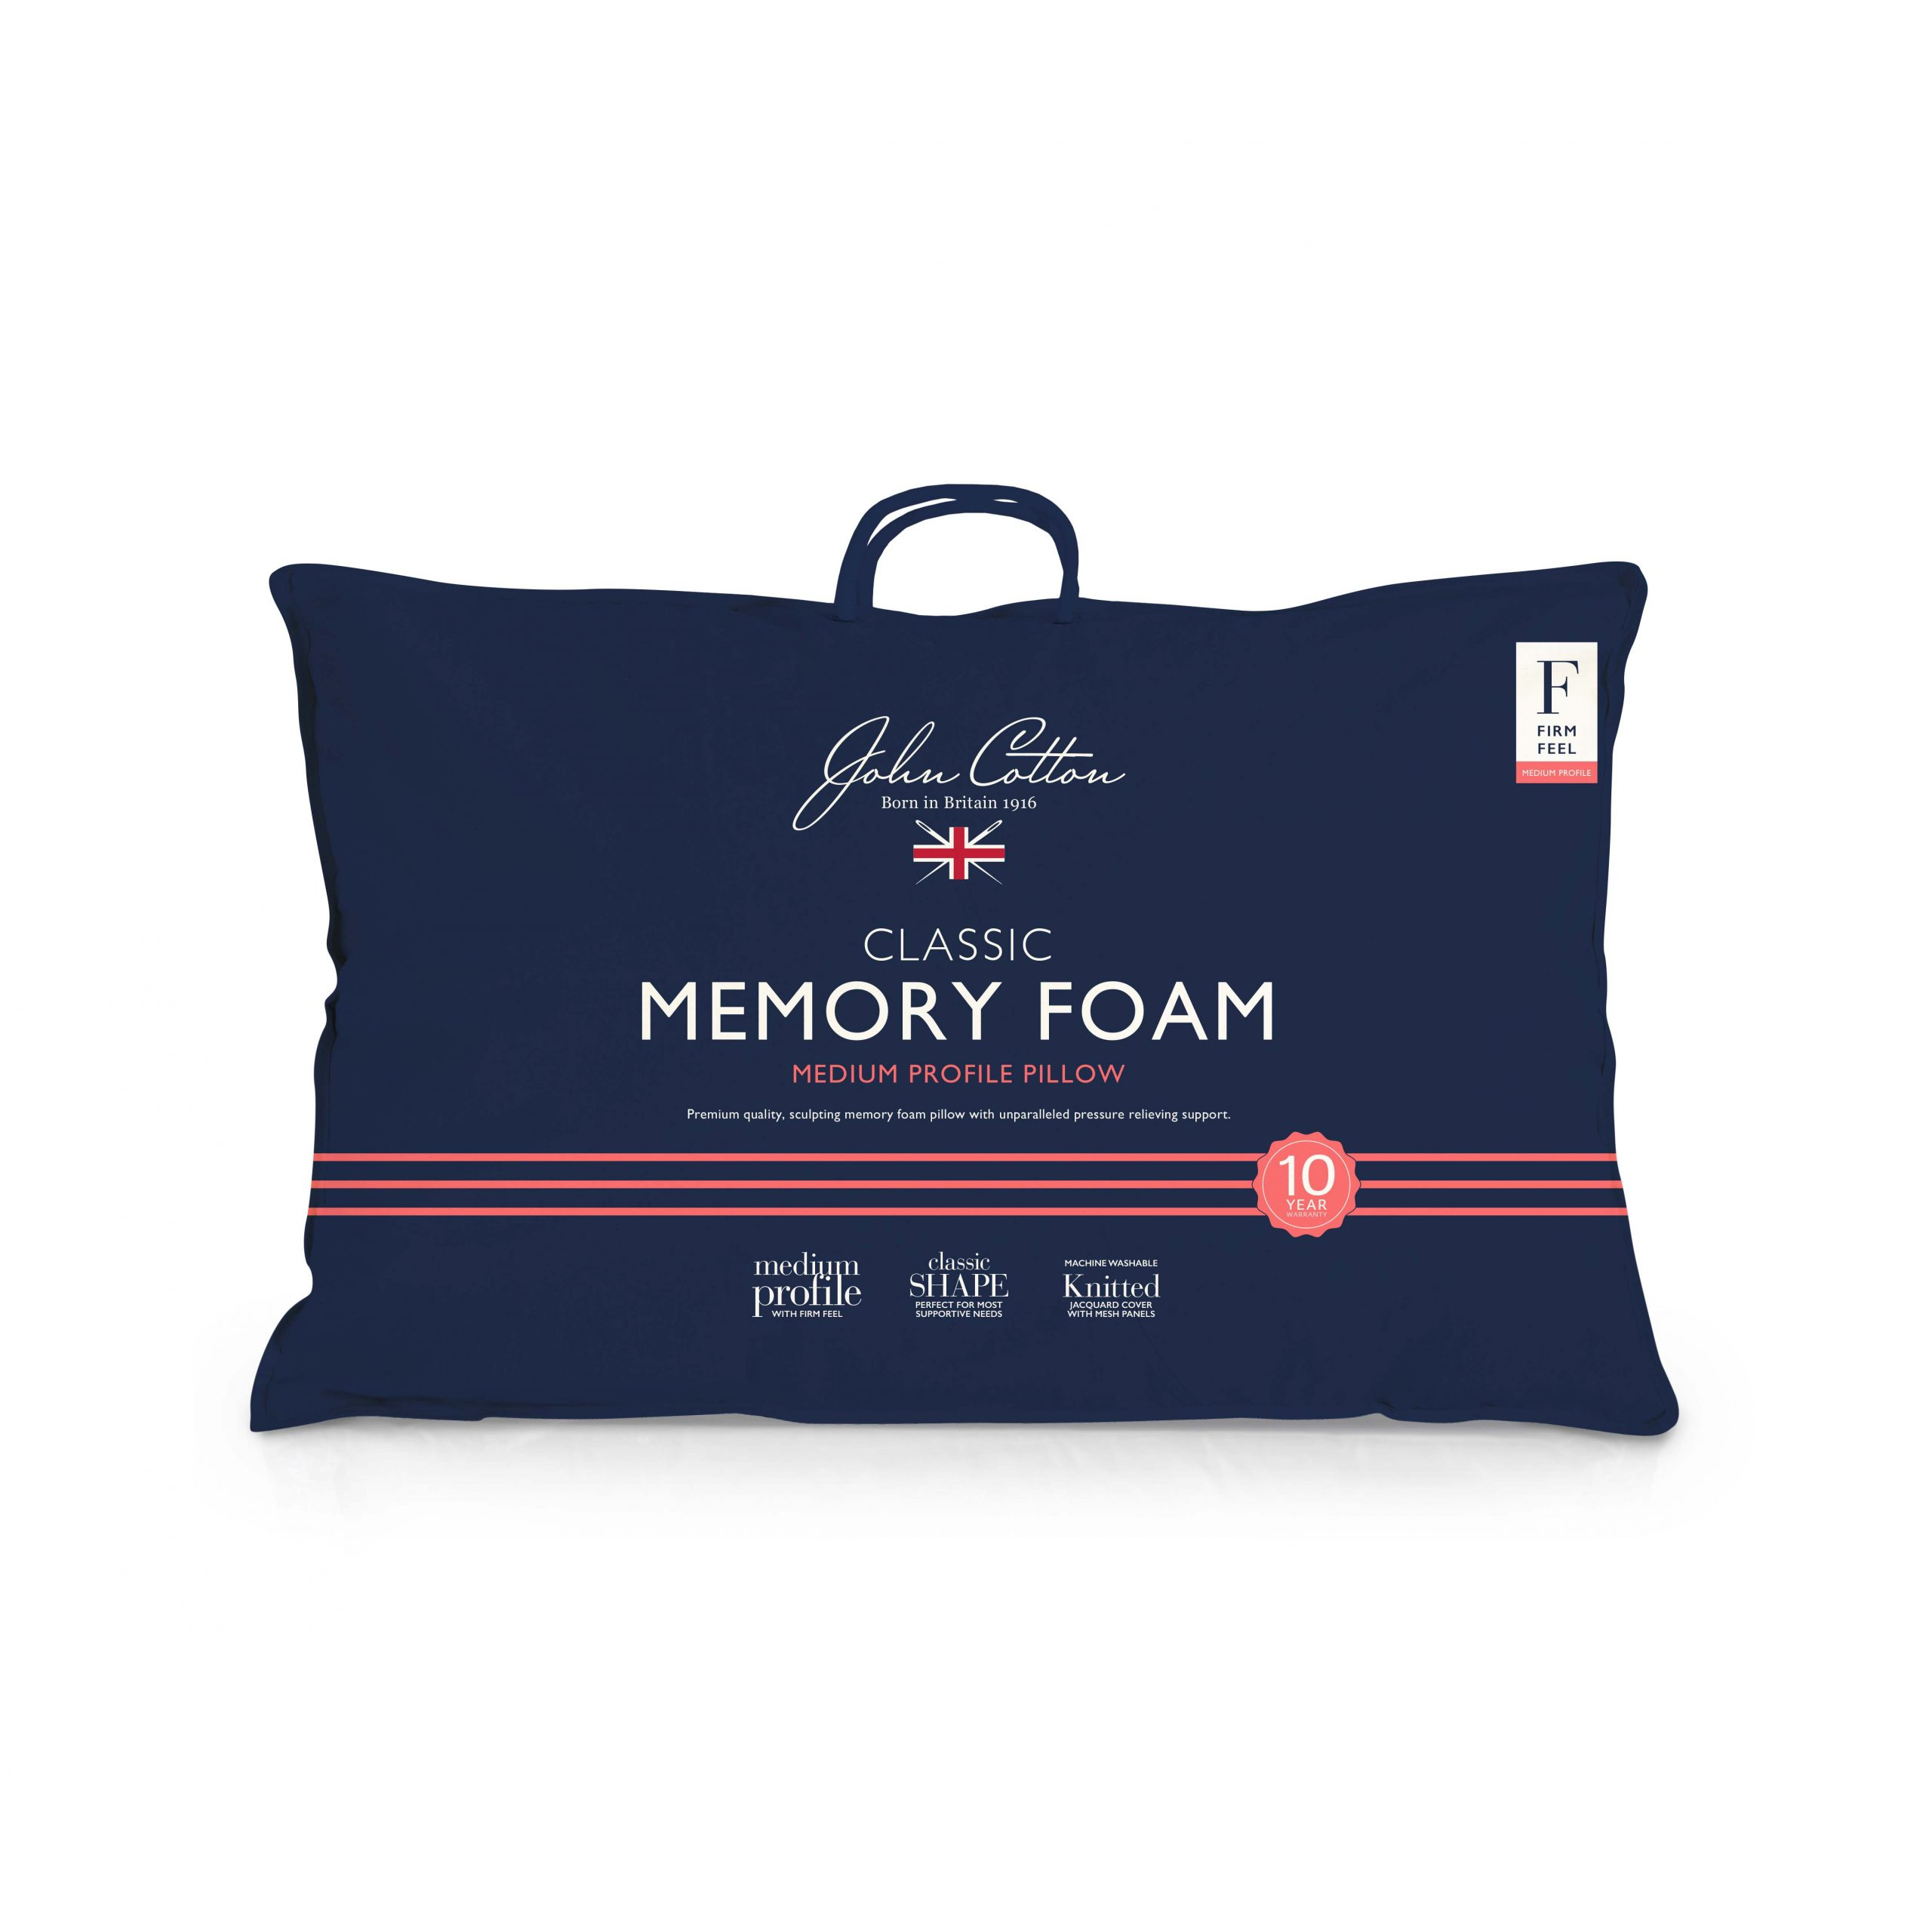 John Cotton Medium Profile Memory Foam Pillow